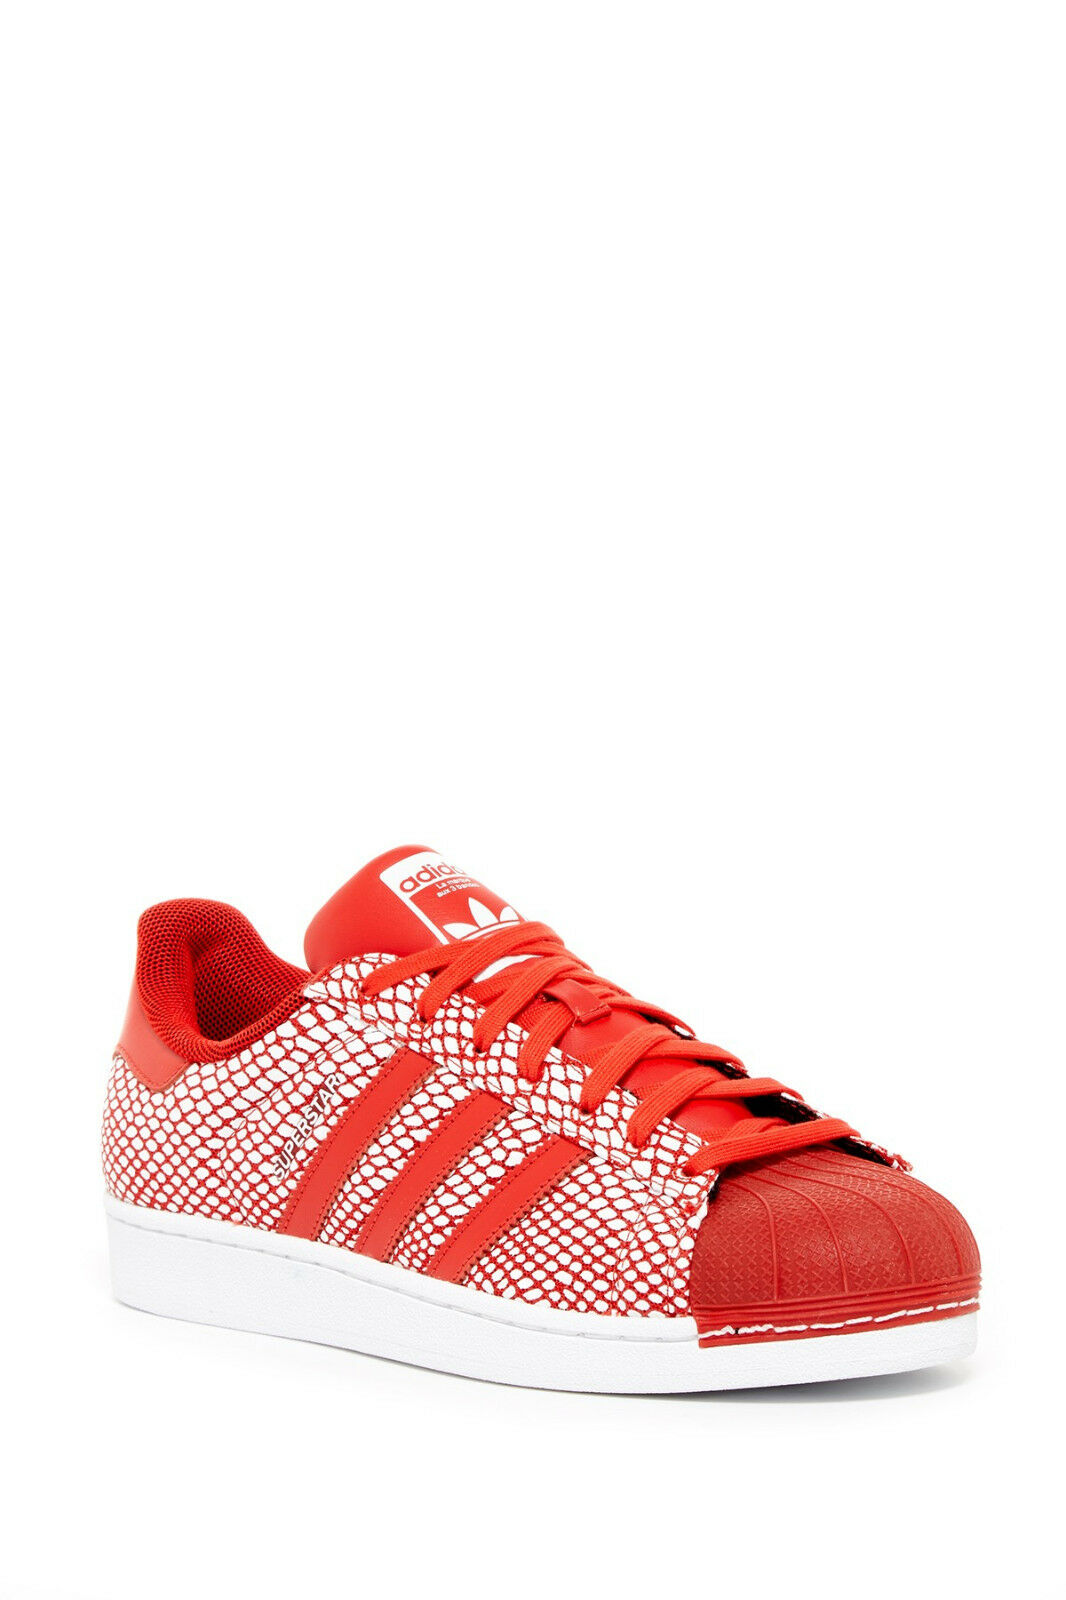 ADIDAS SUPERSTAR SNAKE PACK FASHION LOW MEN SHOES RED/WHITE S82730 SIZE 13 NEW